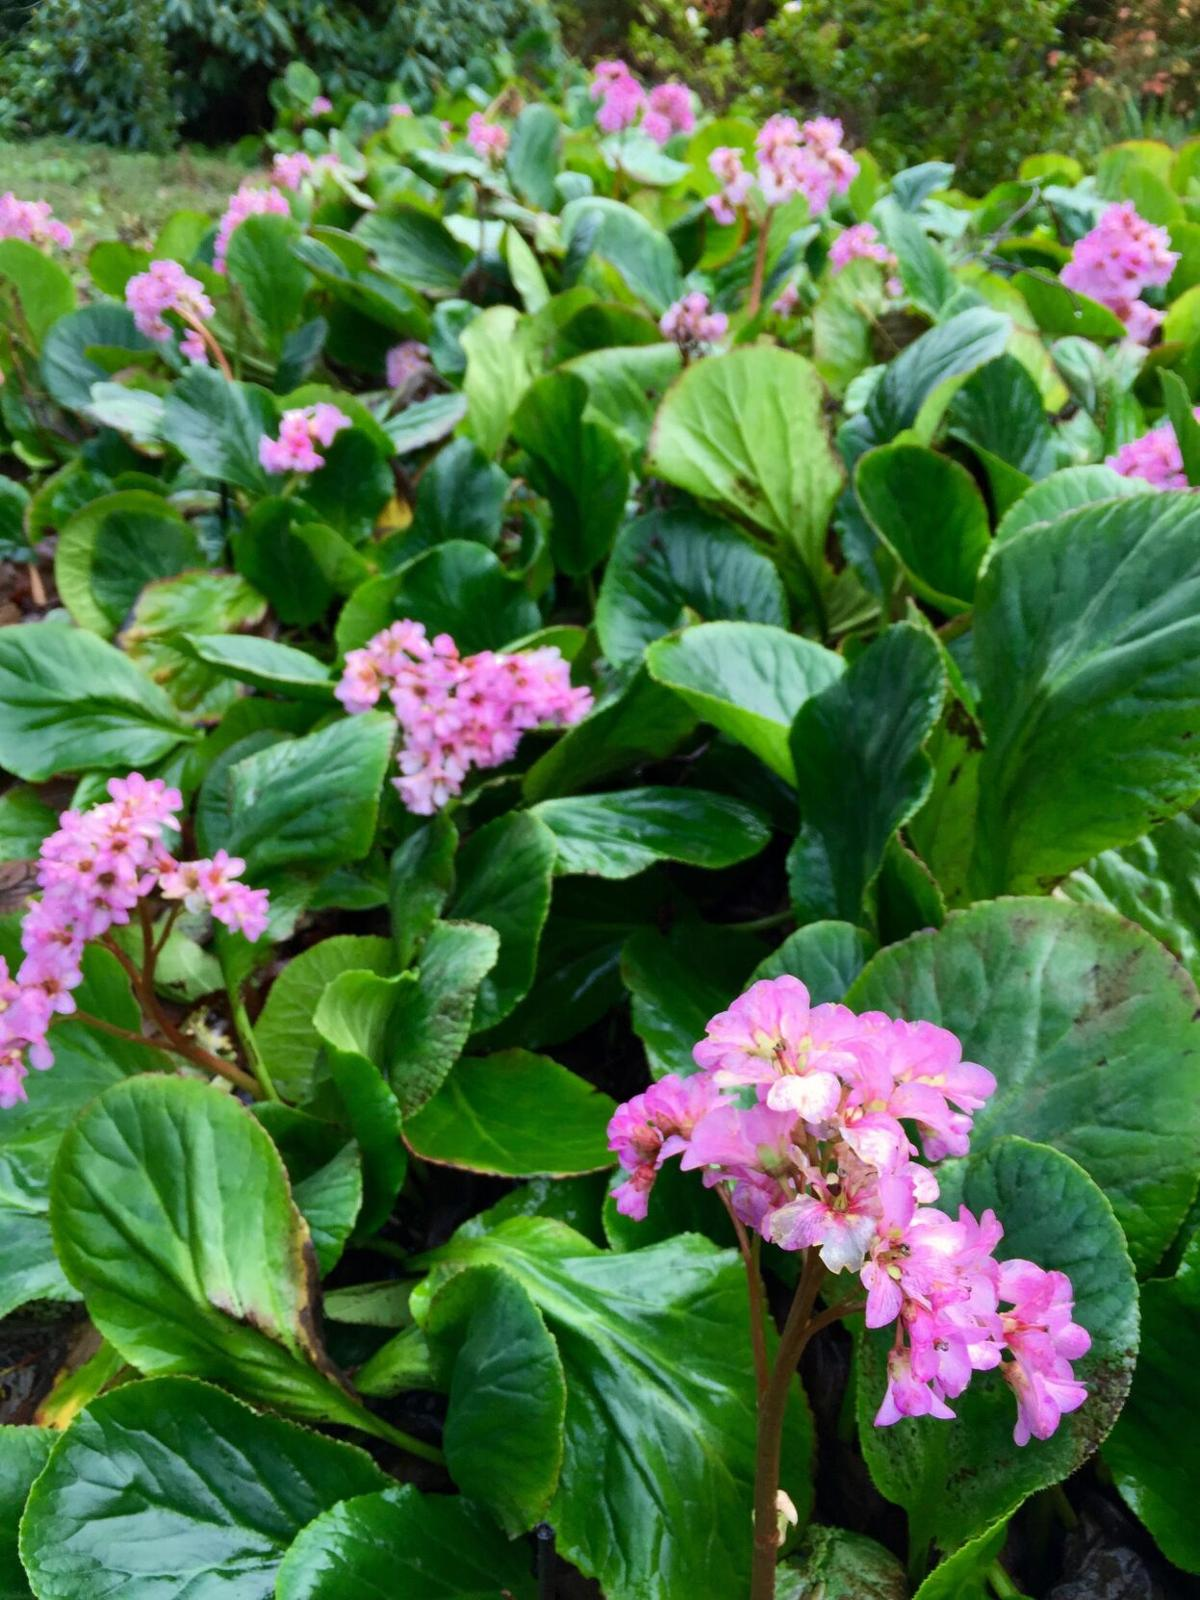 Bergenia is a useful groundcover for difficult soil.